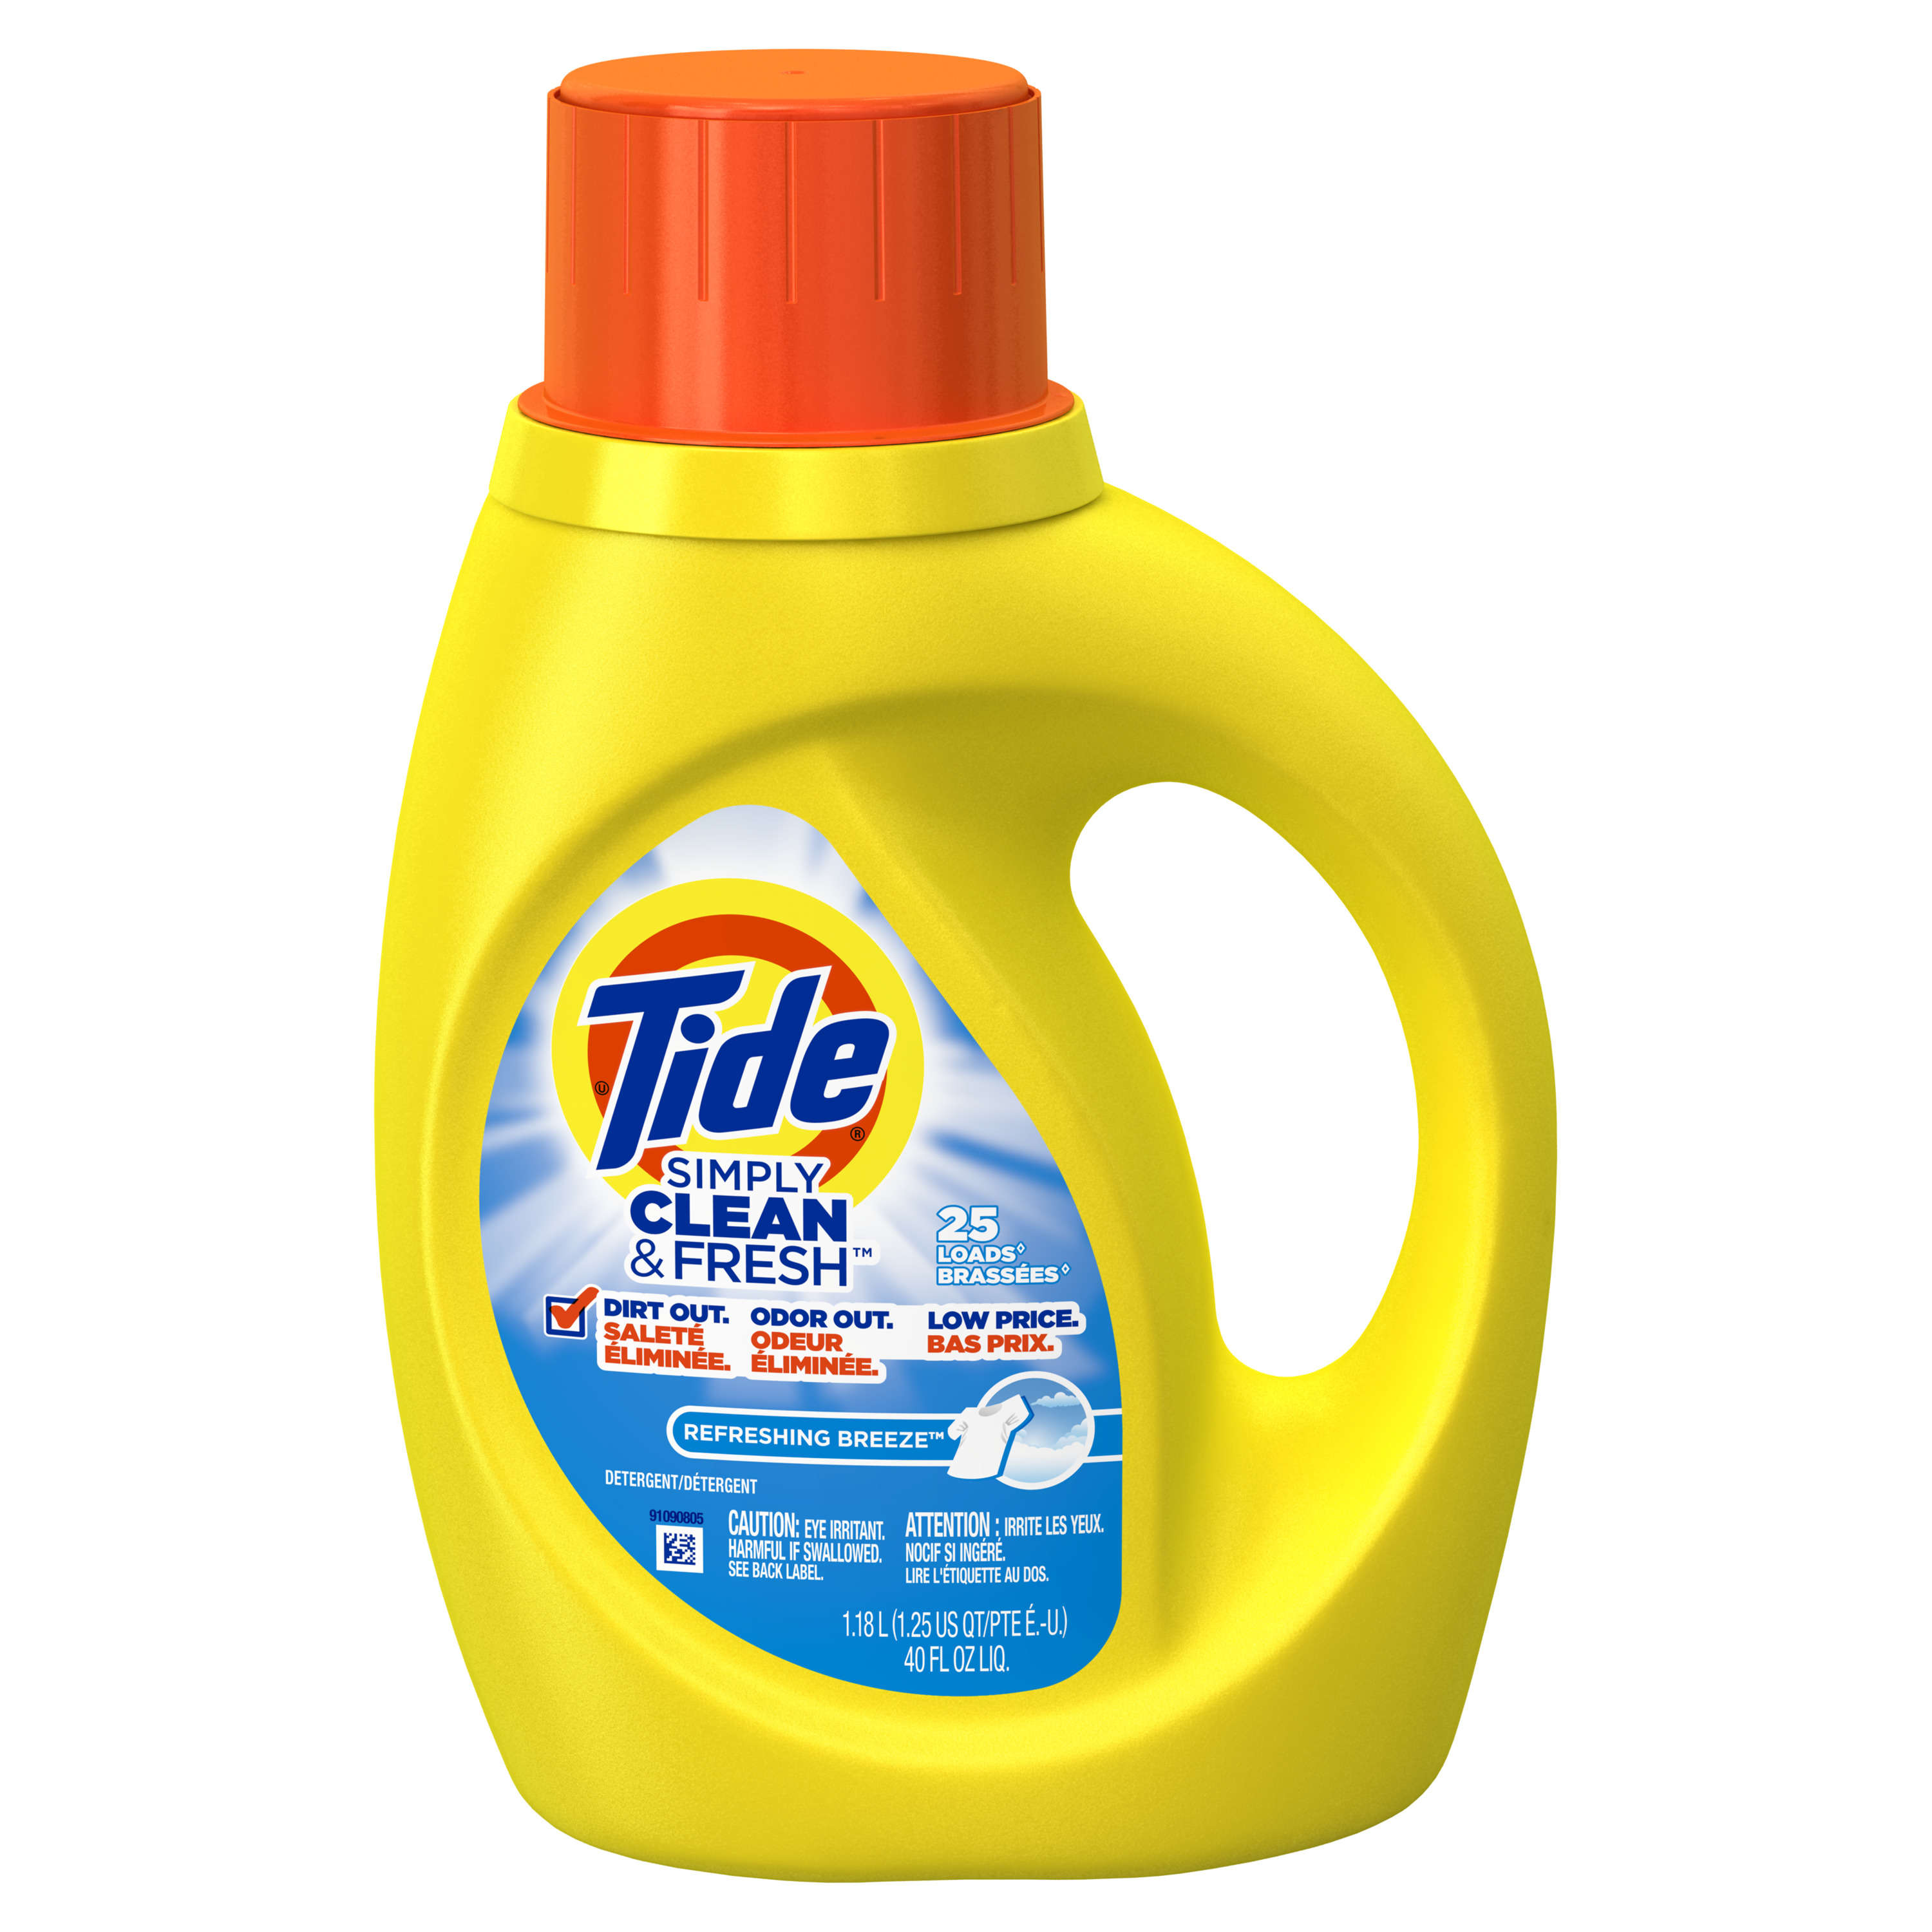 Tide Liquid Laundry Detergent, Refreshing Breeze, 25 Loads, 40 Fl Oz